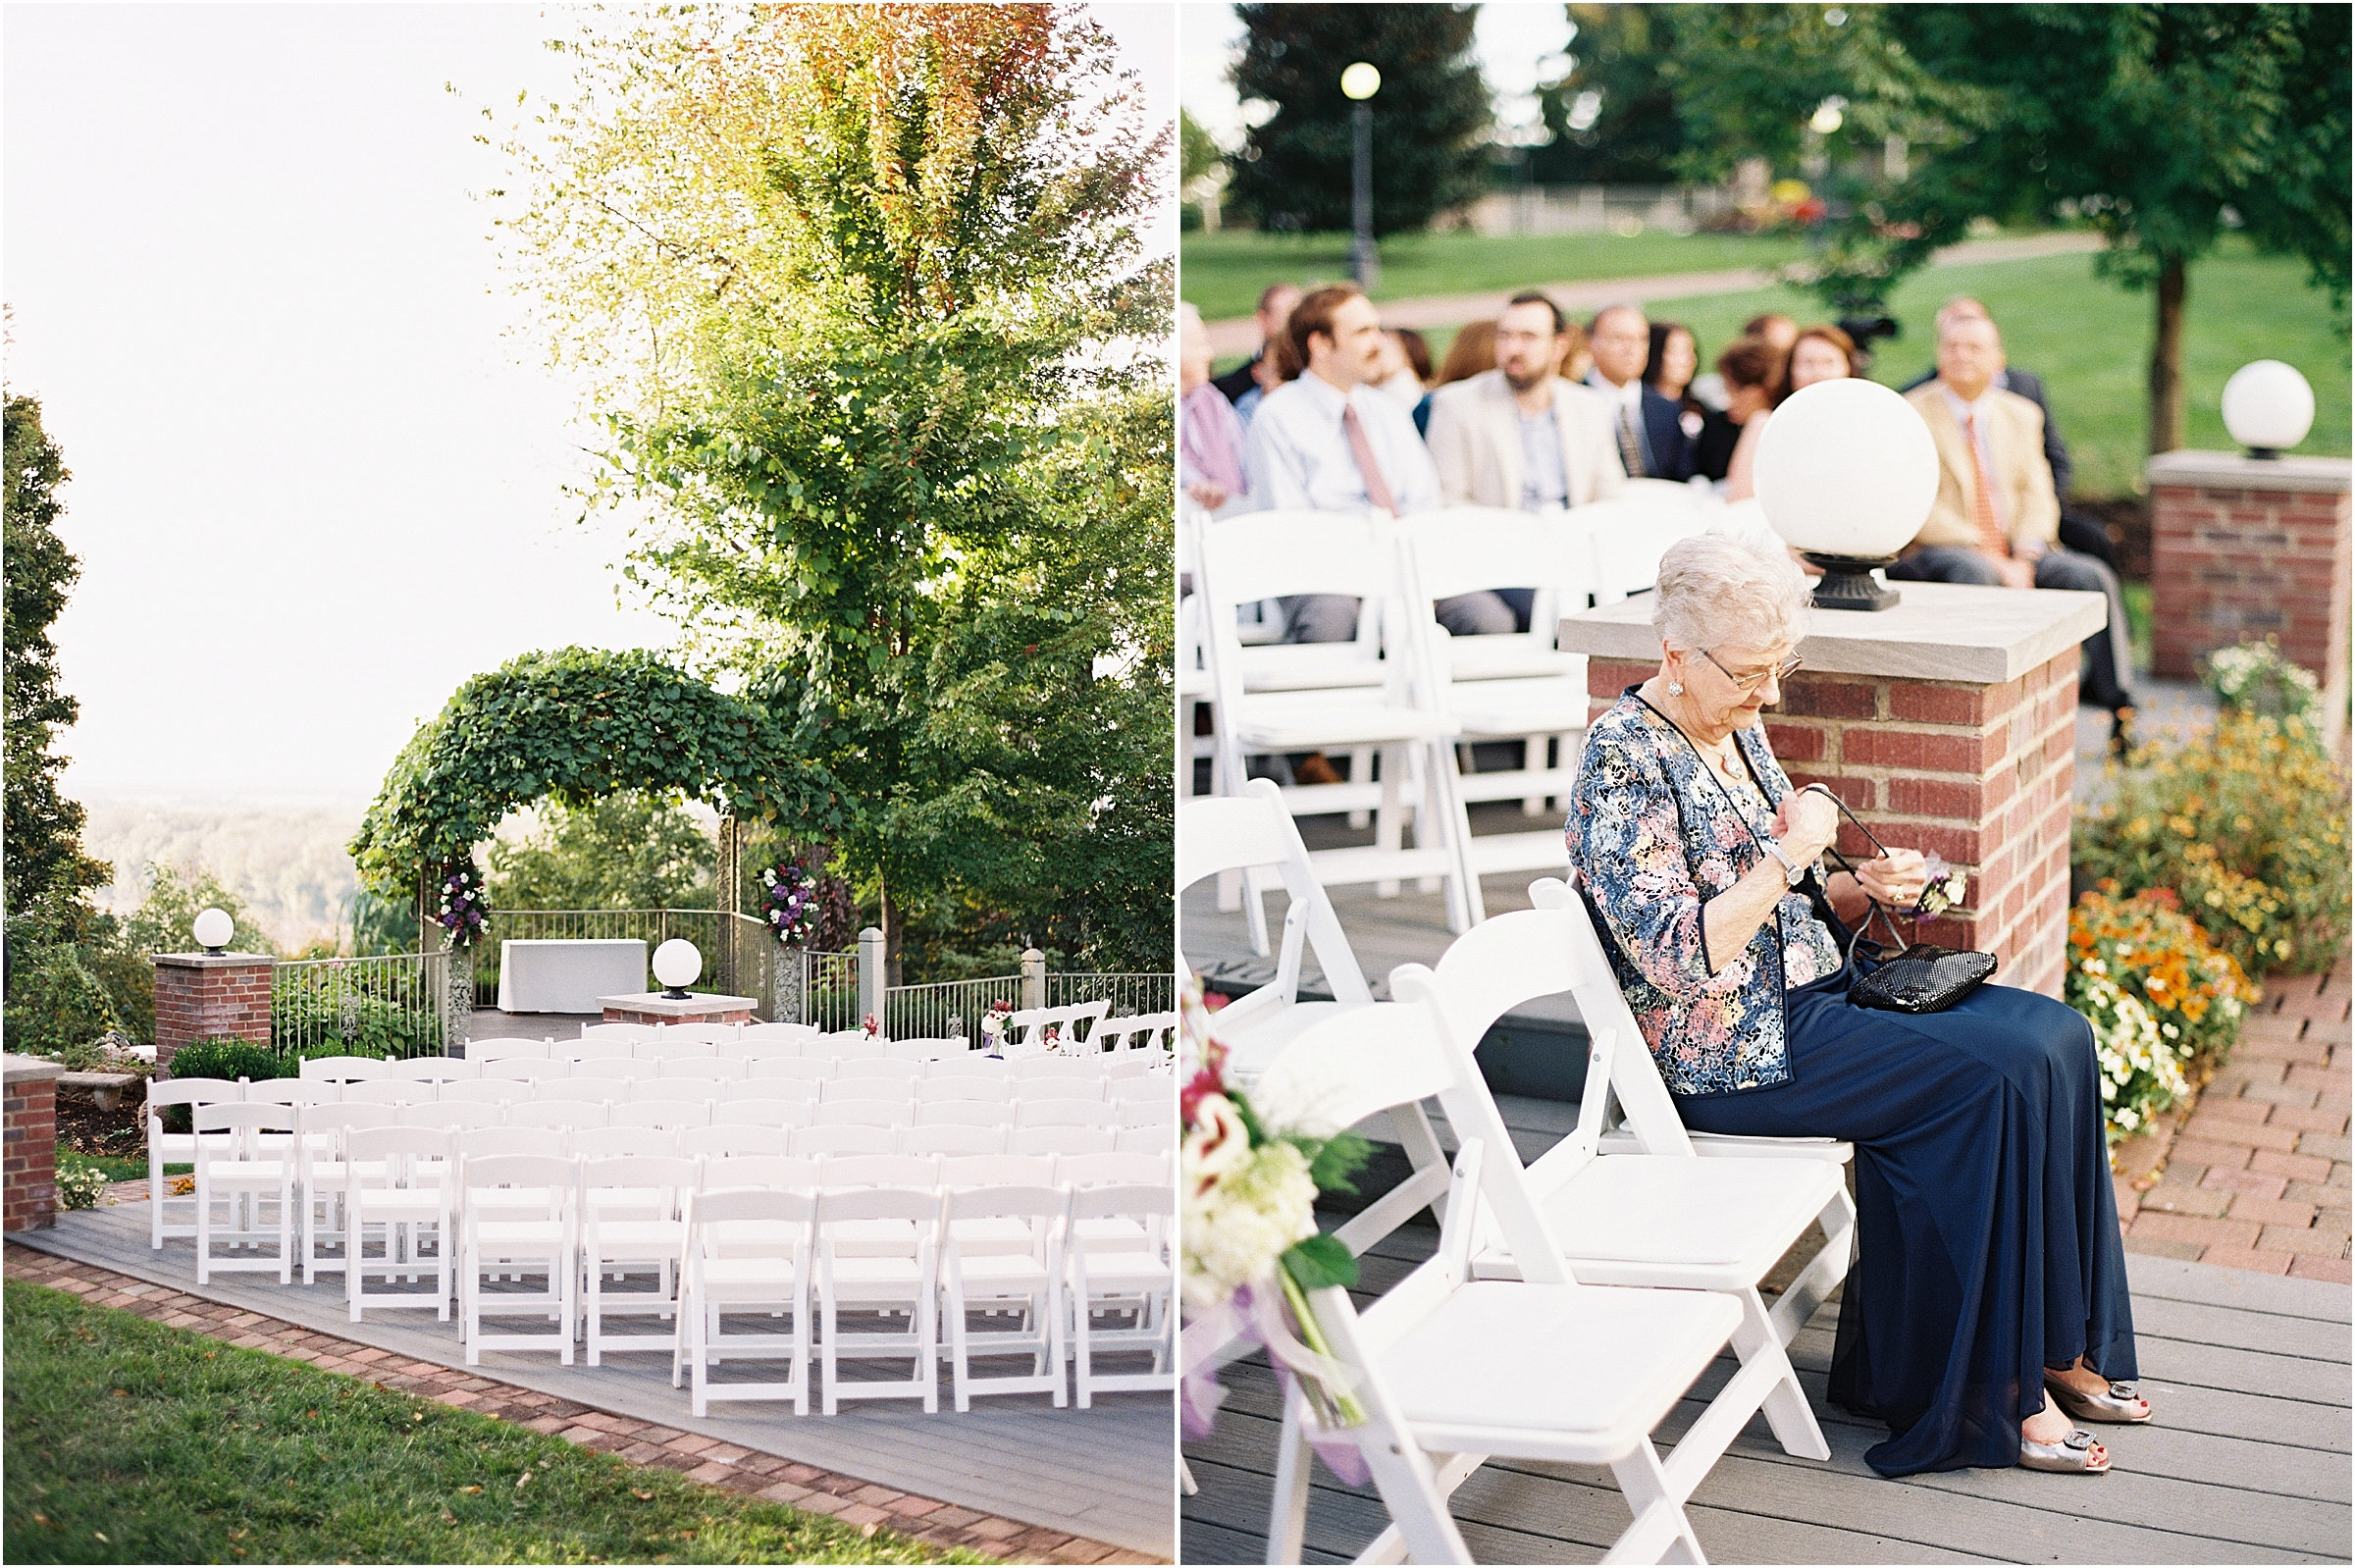 Washington MO Wedding The Vineyard at Rivebend Chapel - Jordan Brittley Photography (www.jordanbrittley.com)